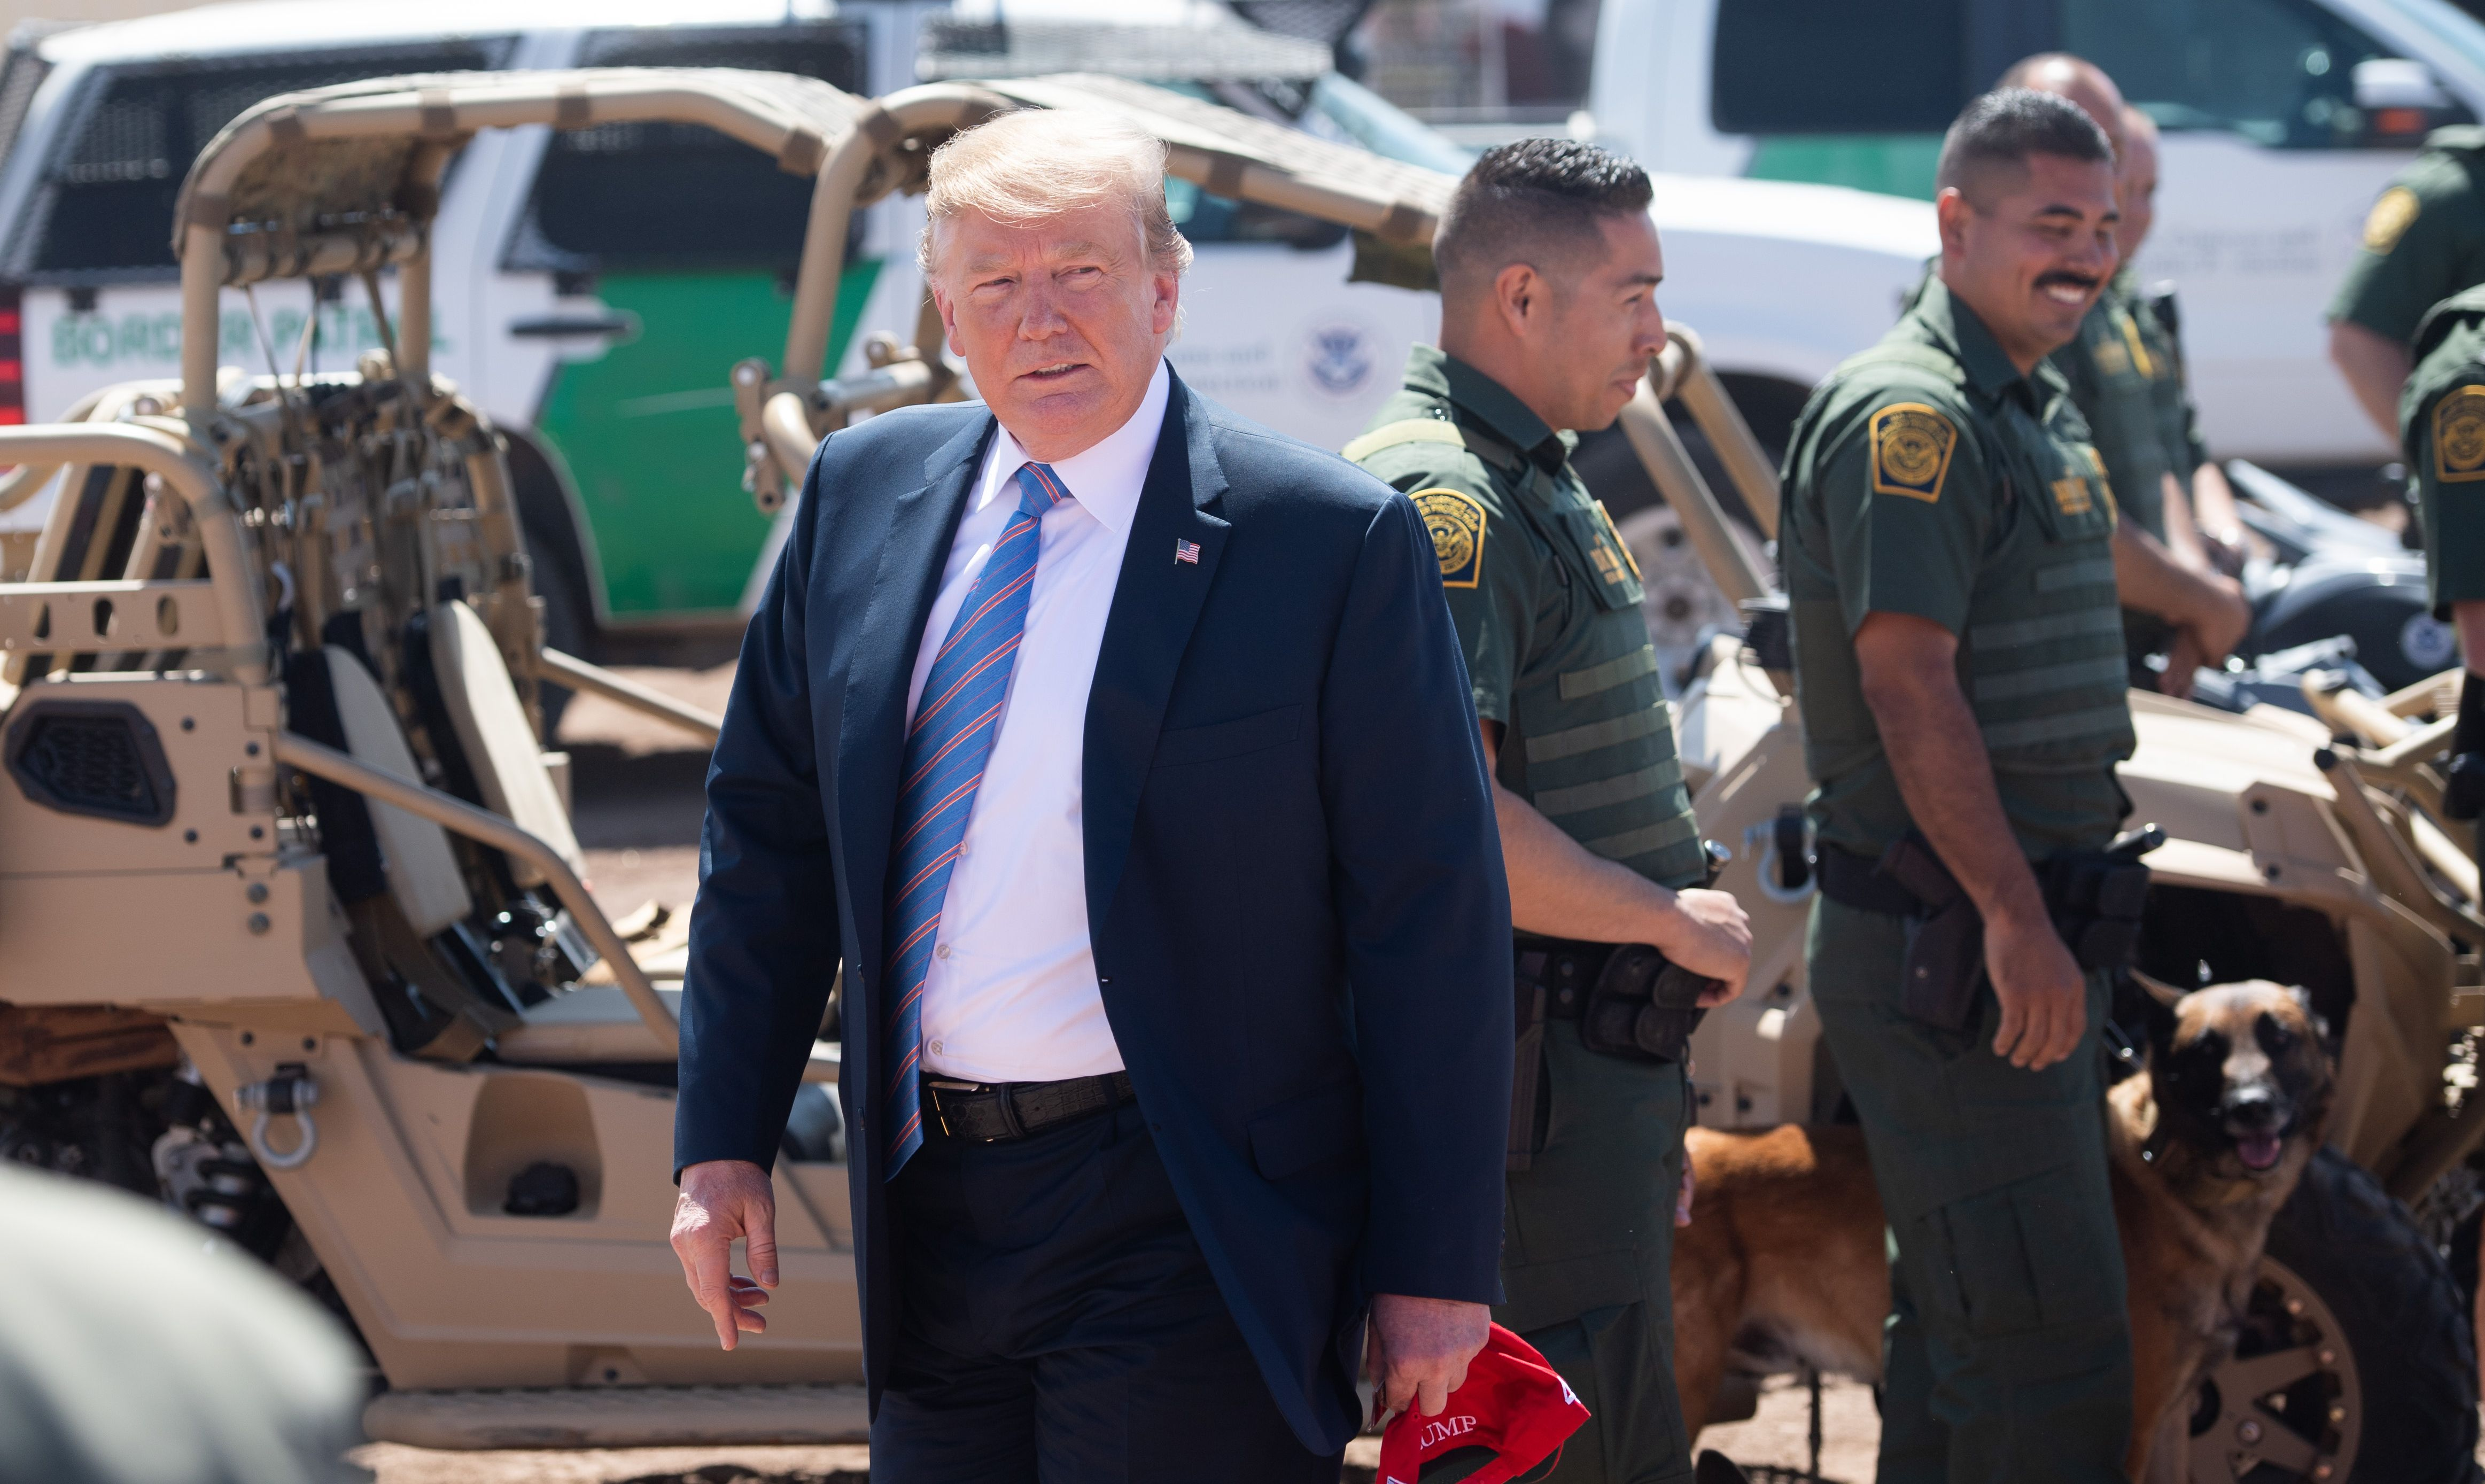 President Donald Trump with members of the US Customs and Border Patrol in Calexico